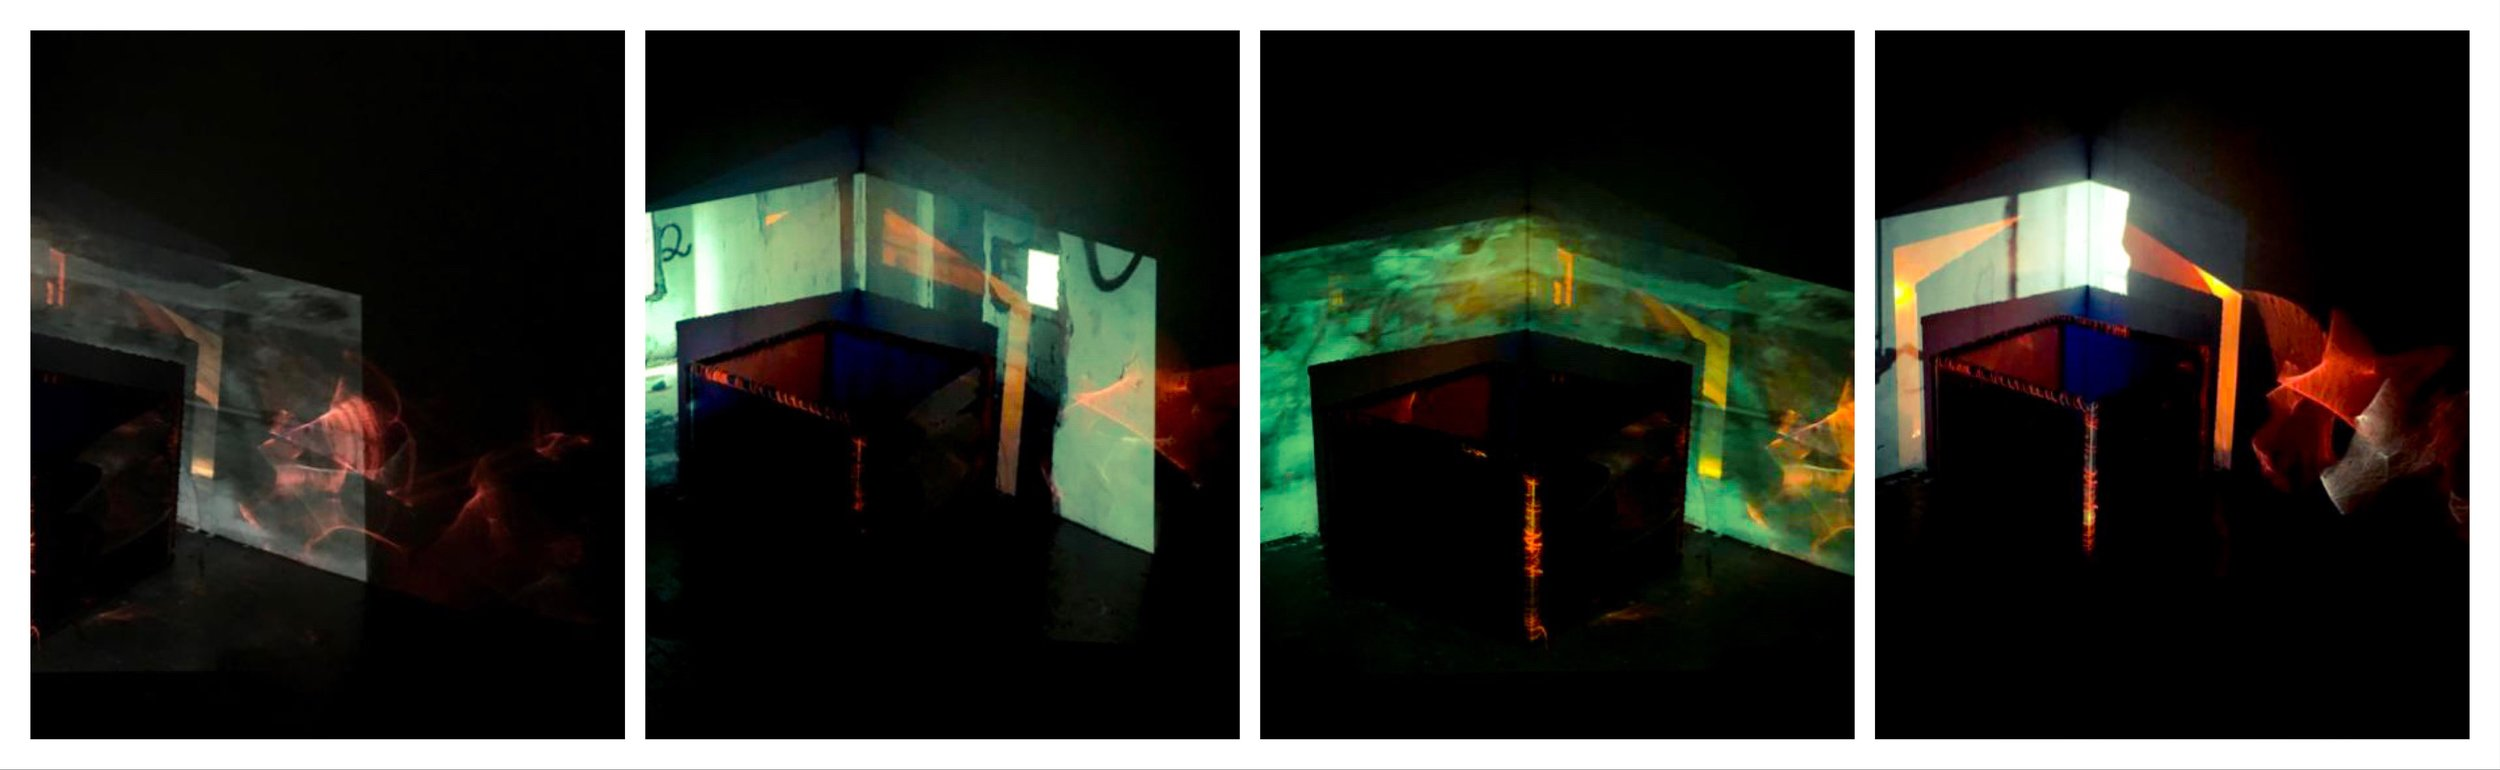 """Fire.       2016.      Steel, colored film gels, yarn, video projection of B/W footage I shot on the West Bank.  26"""" H 26"""" W 26"""""""